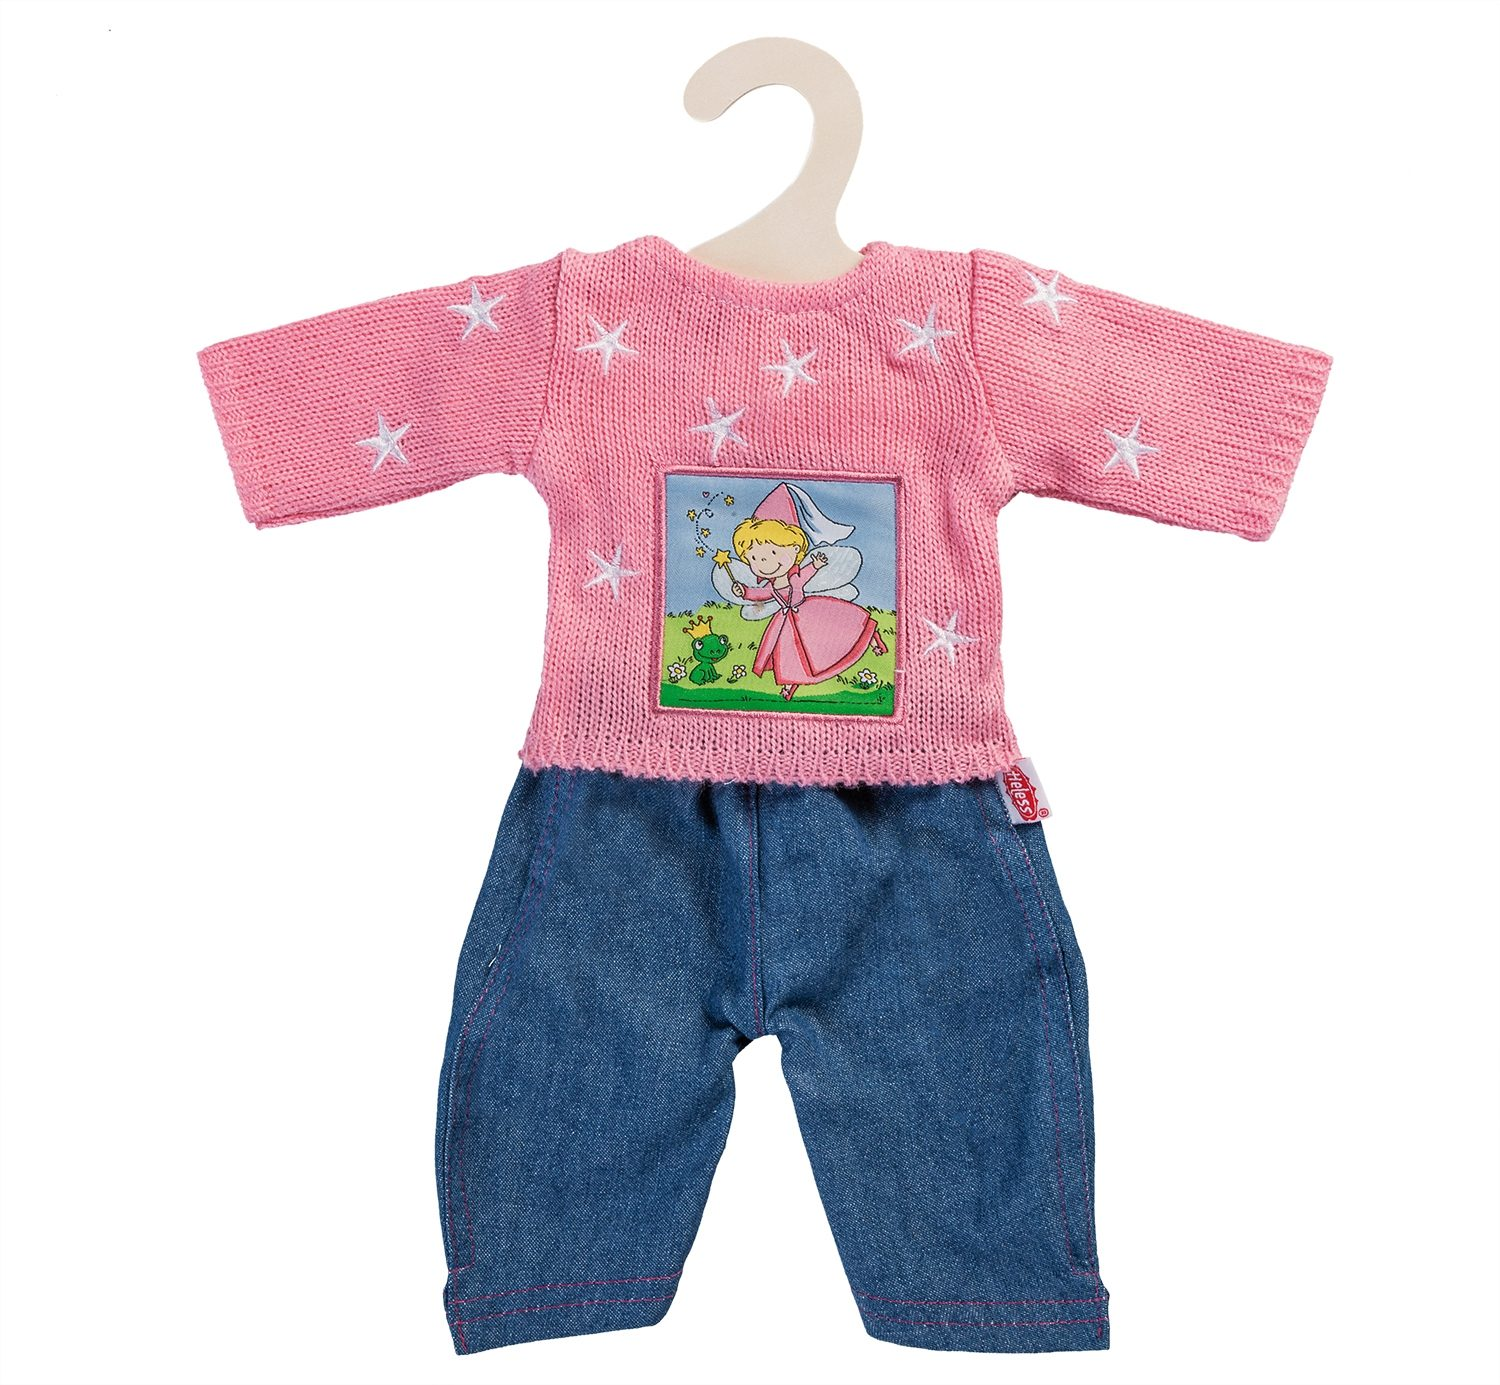 Heless® Puppenkleidung Gr. 35-45 cm, »Pullover rosa mit Jeans« (2tlg.)